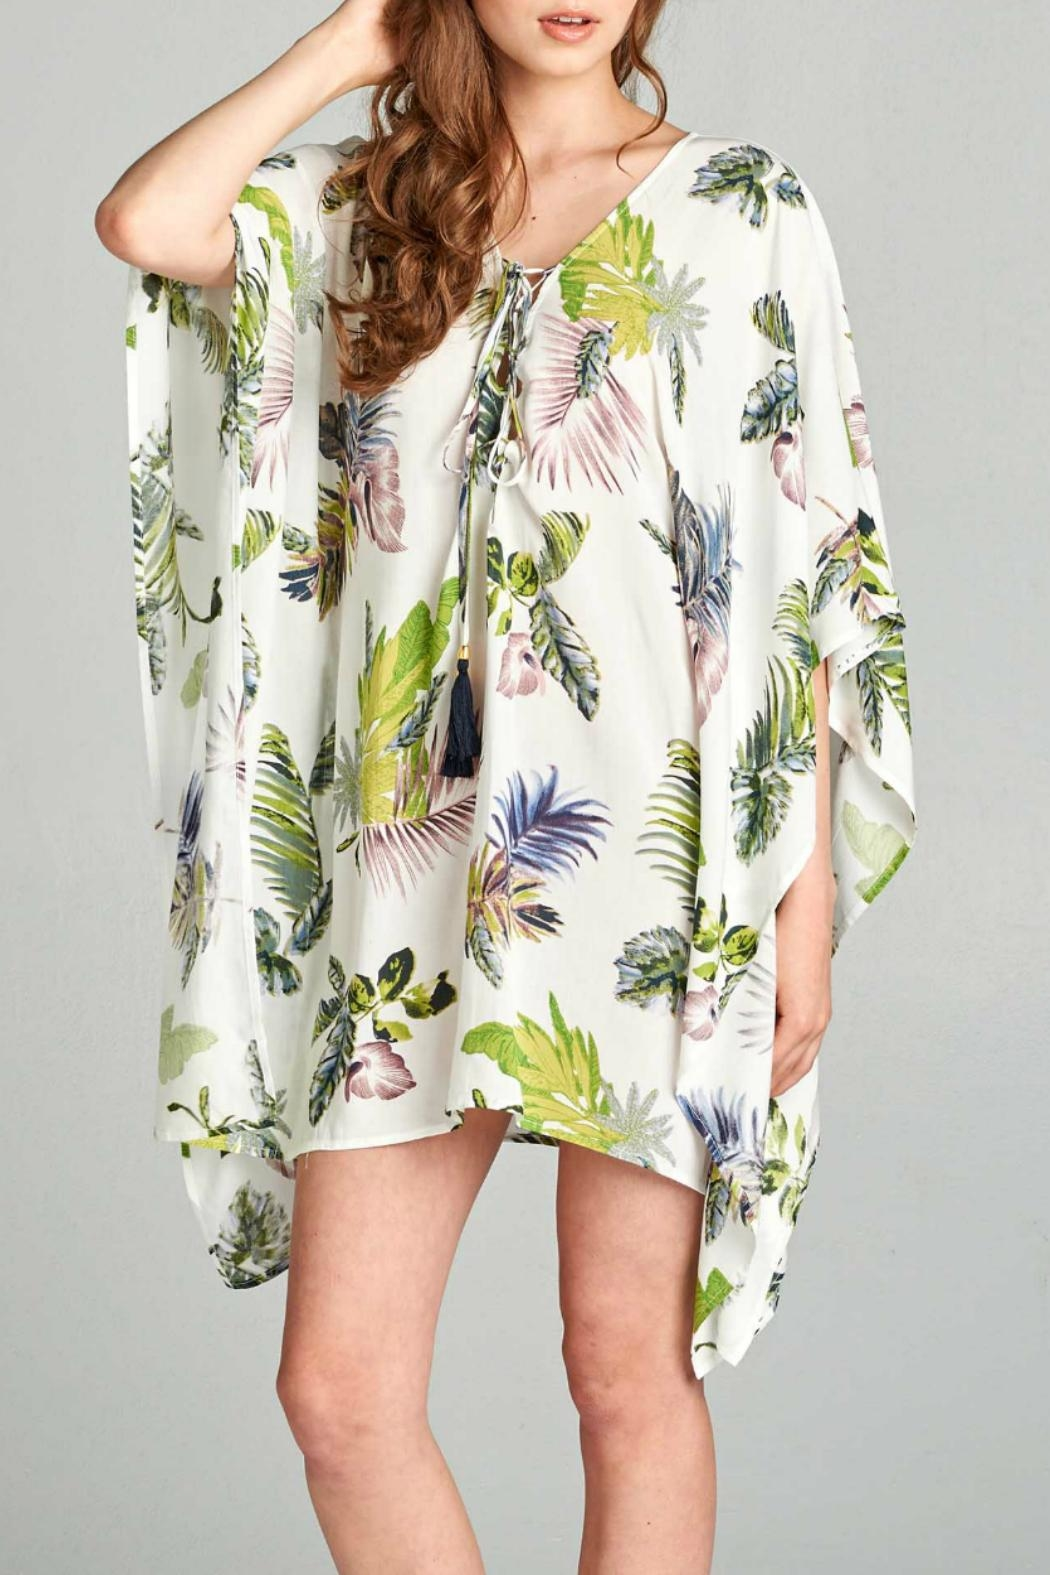 AAKAA Floral Tie Front Dress - Main Image